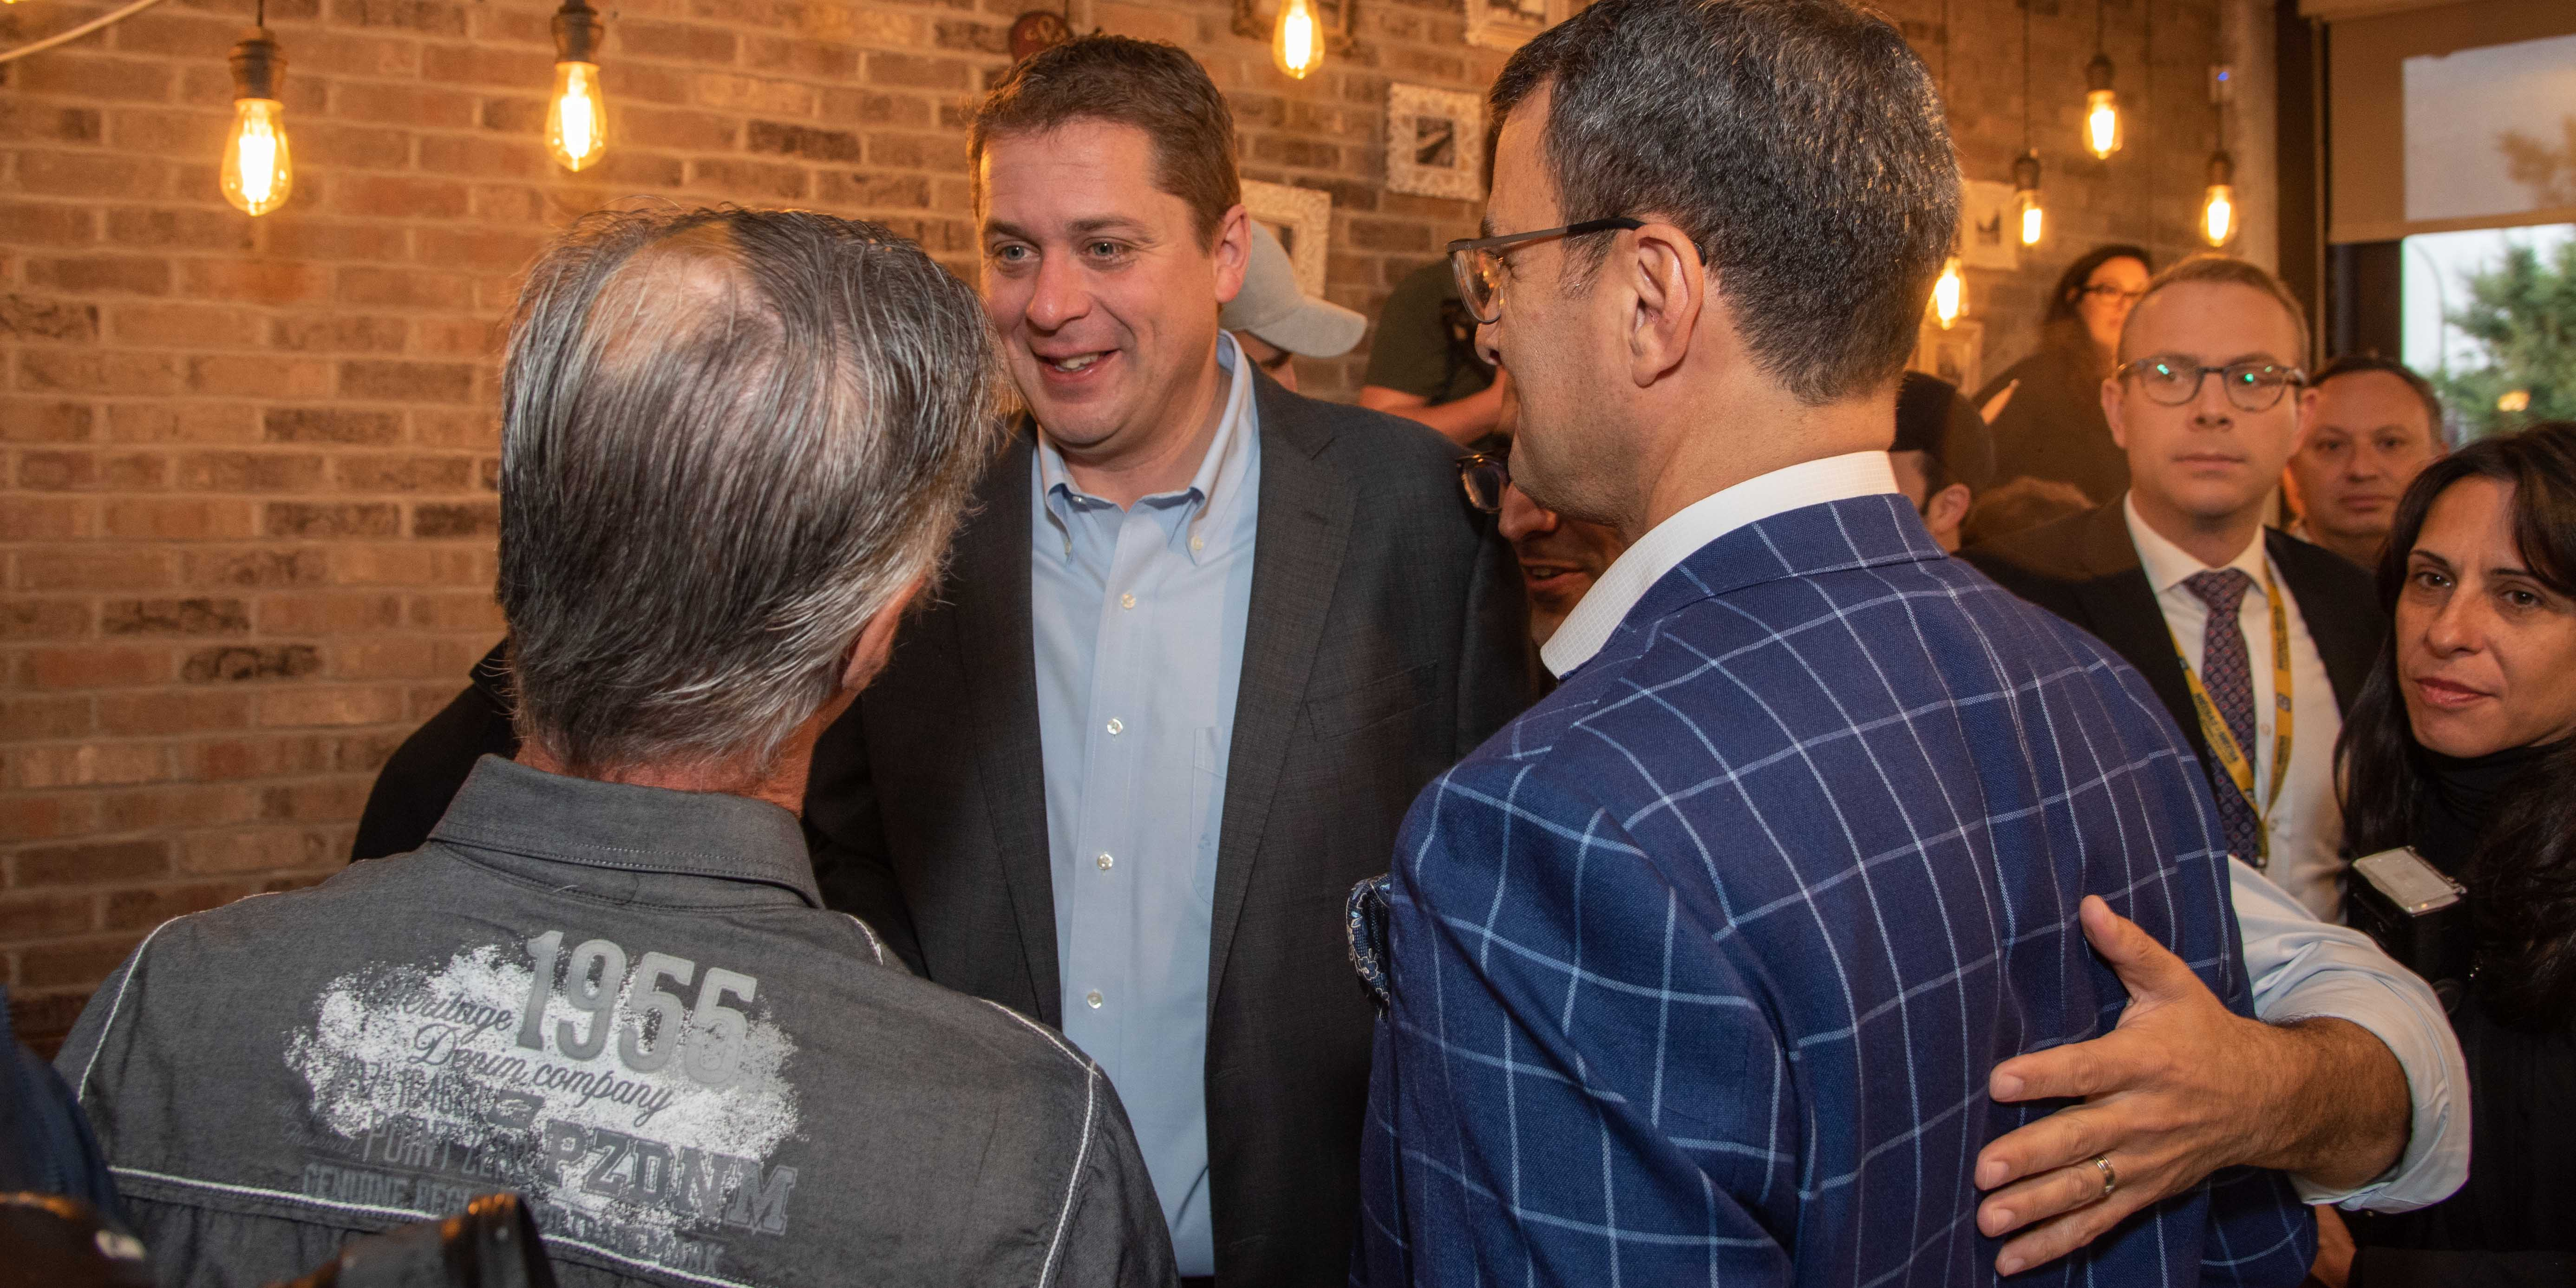 Andrew Scheer promises he'd fine politicians up to $20,000 for breaking ethics laws